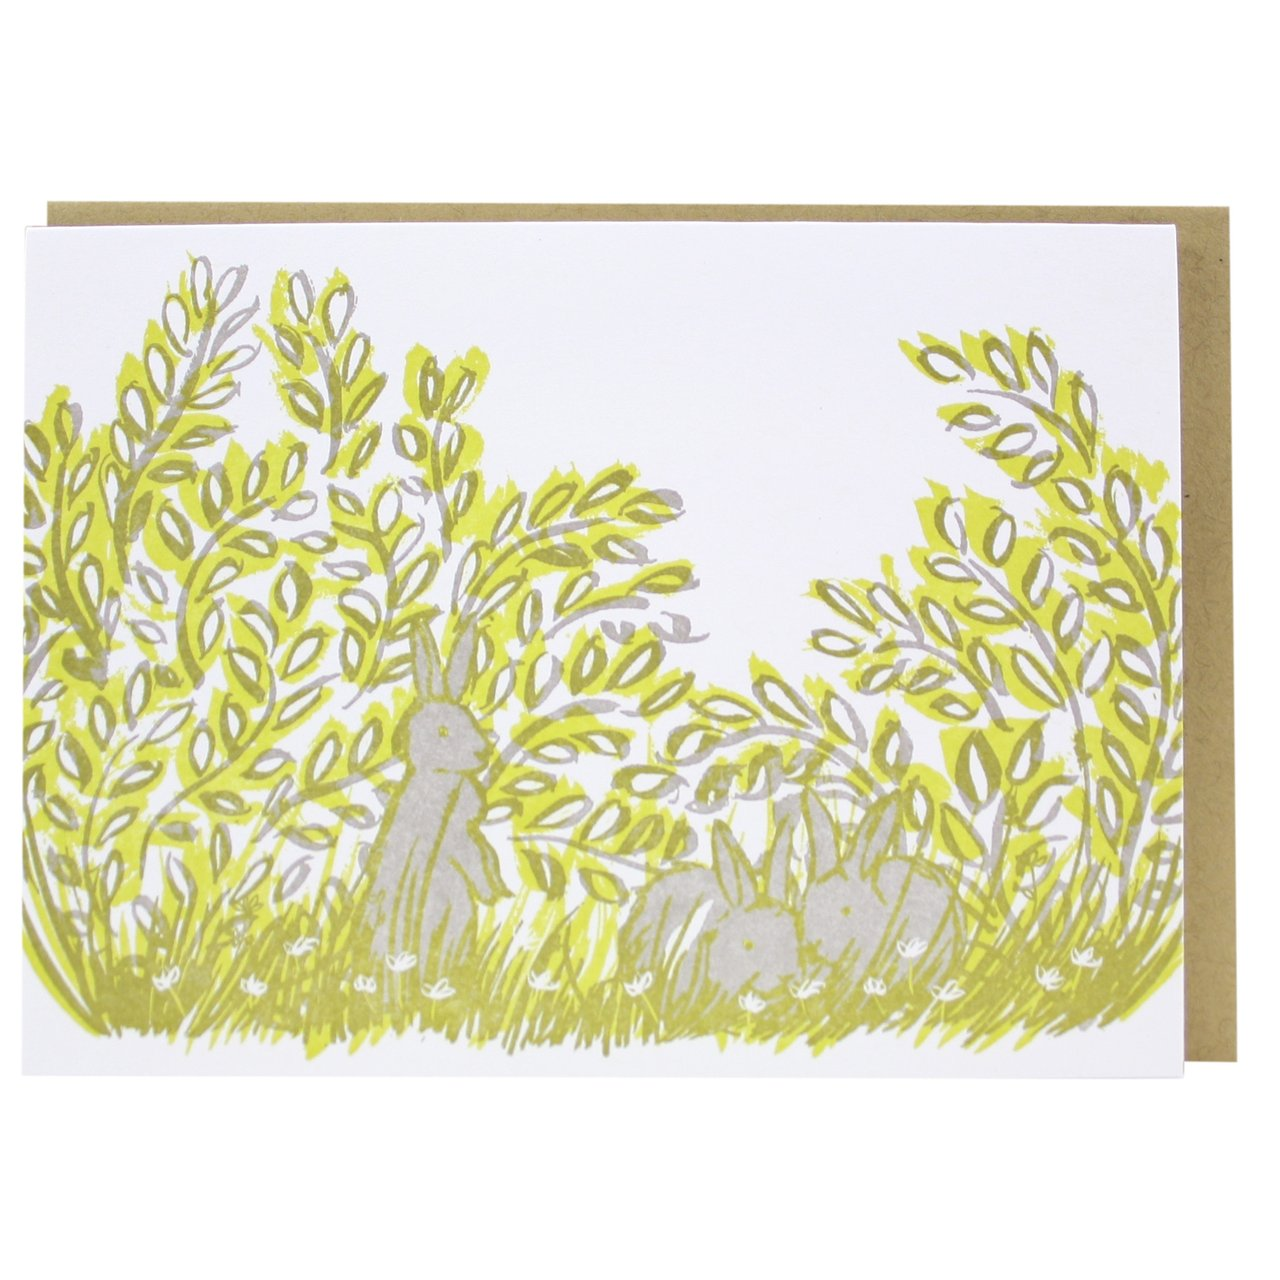 bunnies-in-the-forest-note-card_1280x1280.jpg